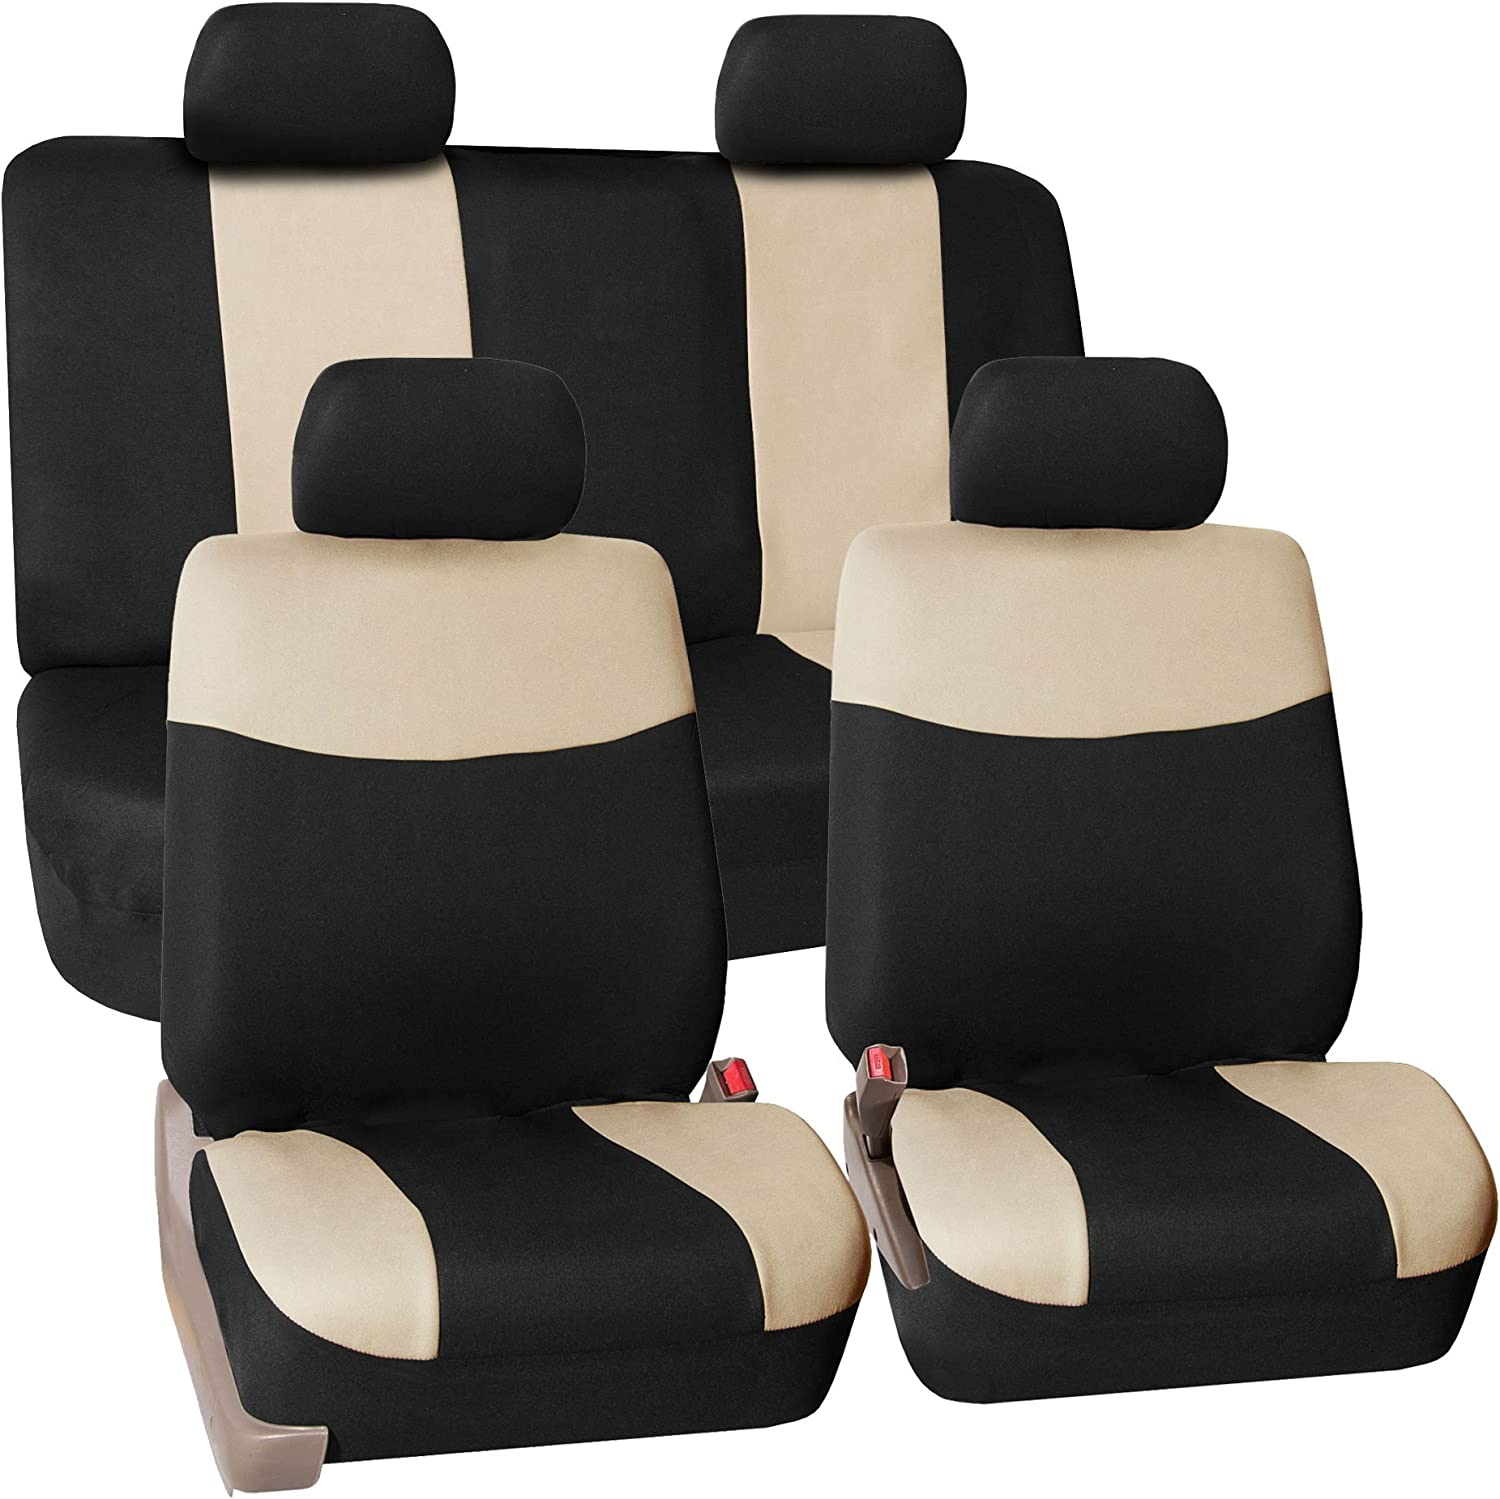 FH Group Stylish Cloth Full Set Car Seat Covers - Fit Most Car, Truck, SUV Van